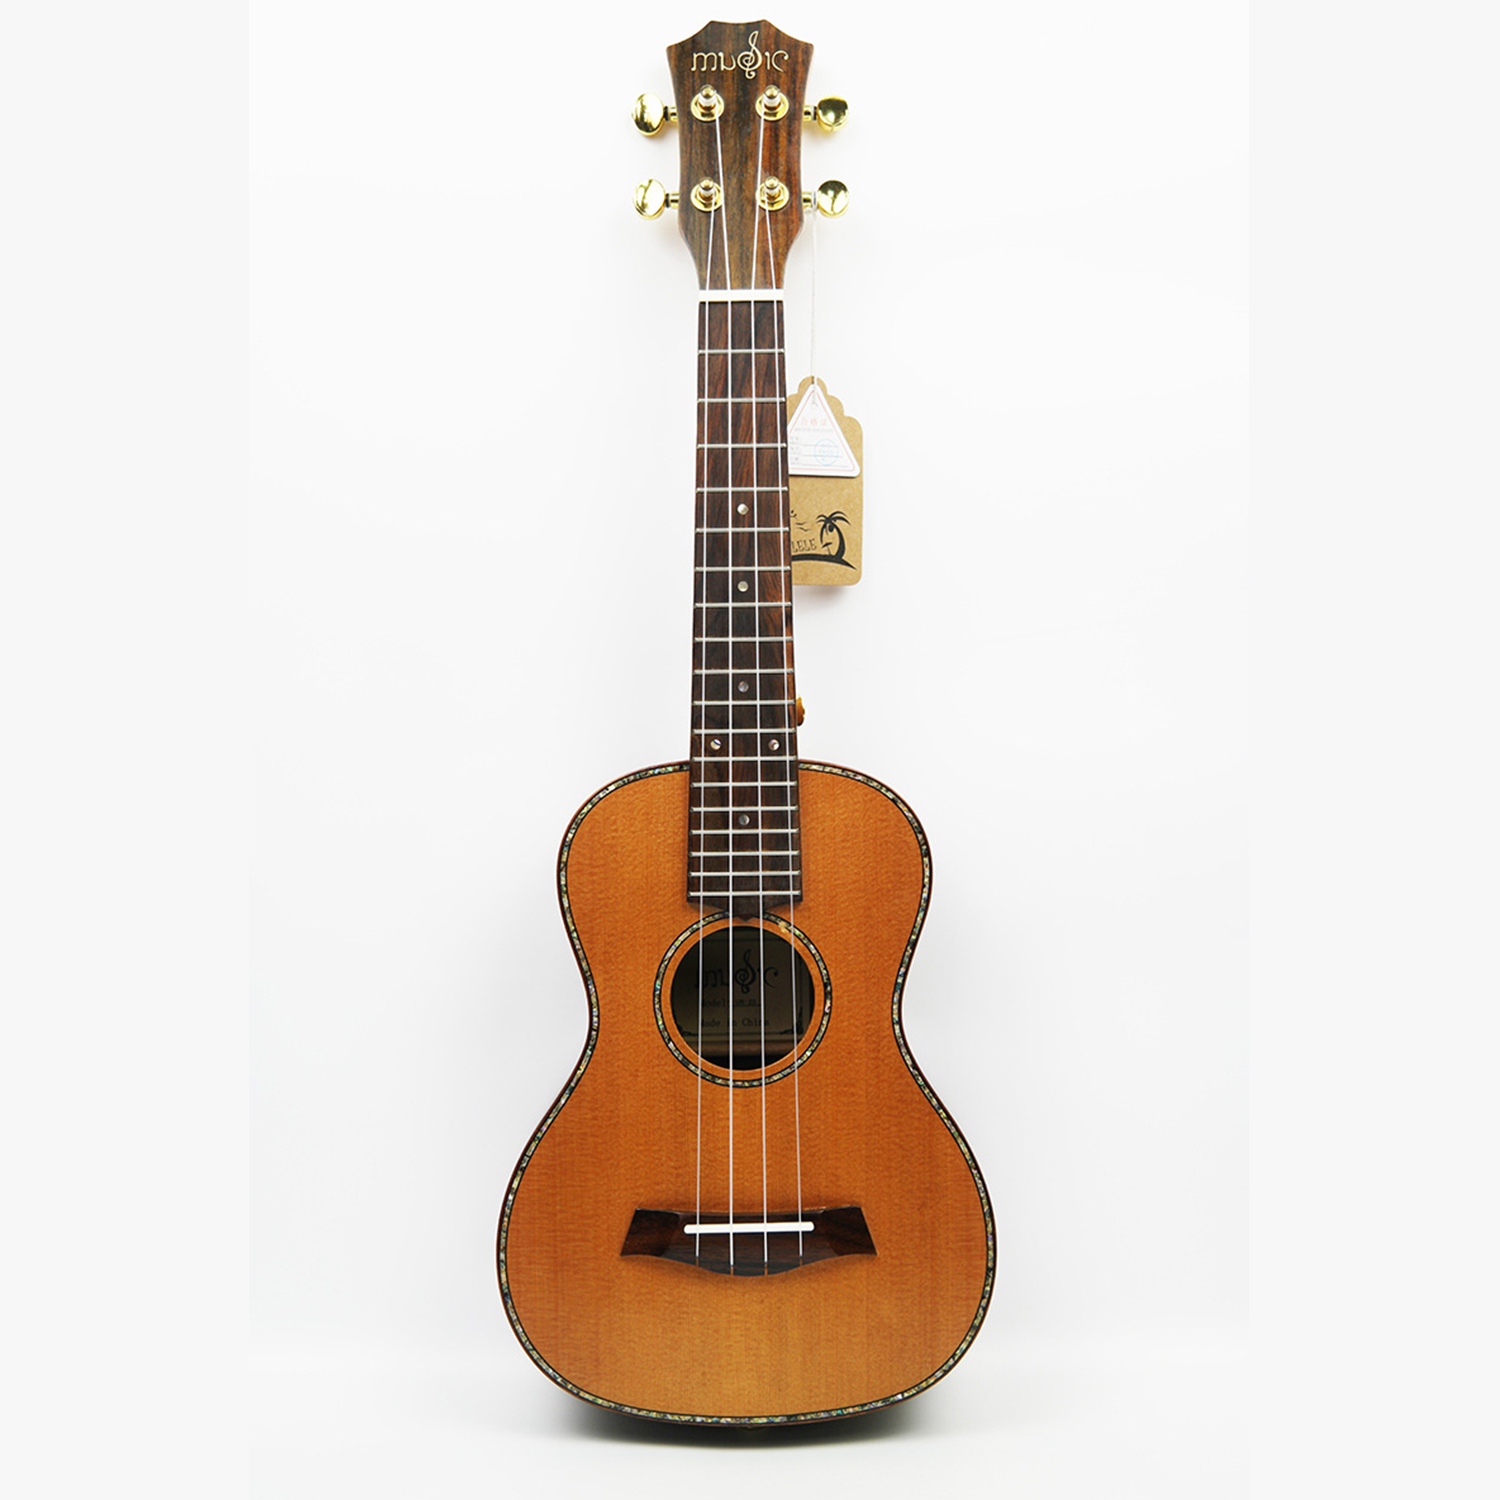 "23"" Concert Rosewood Red Pine Solid Wood 4 Strings UKULELE Fretboard Hawaiian mini small guita travel acoustic Uke Concert"